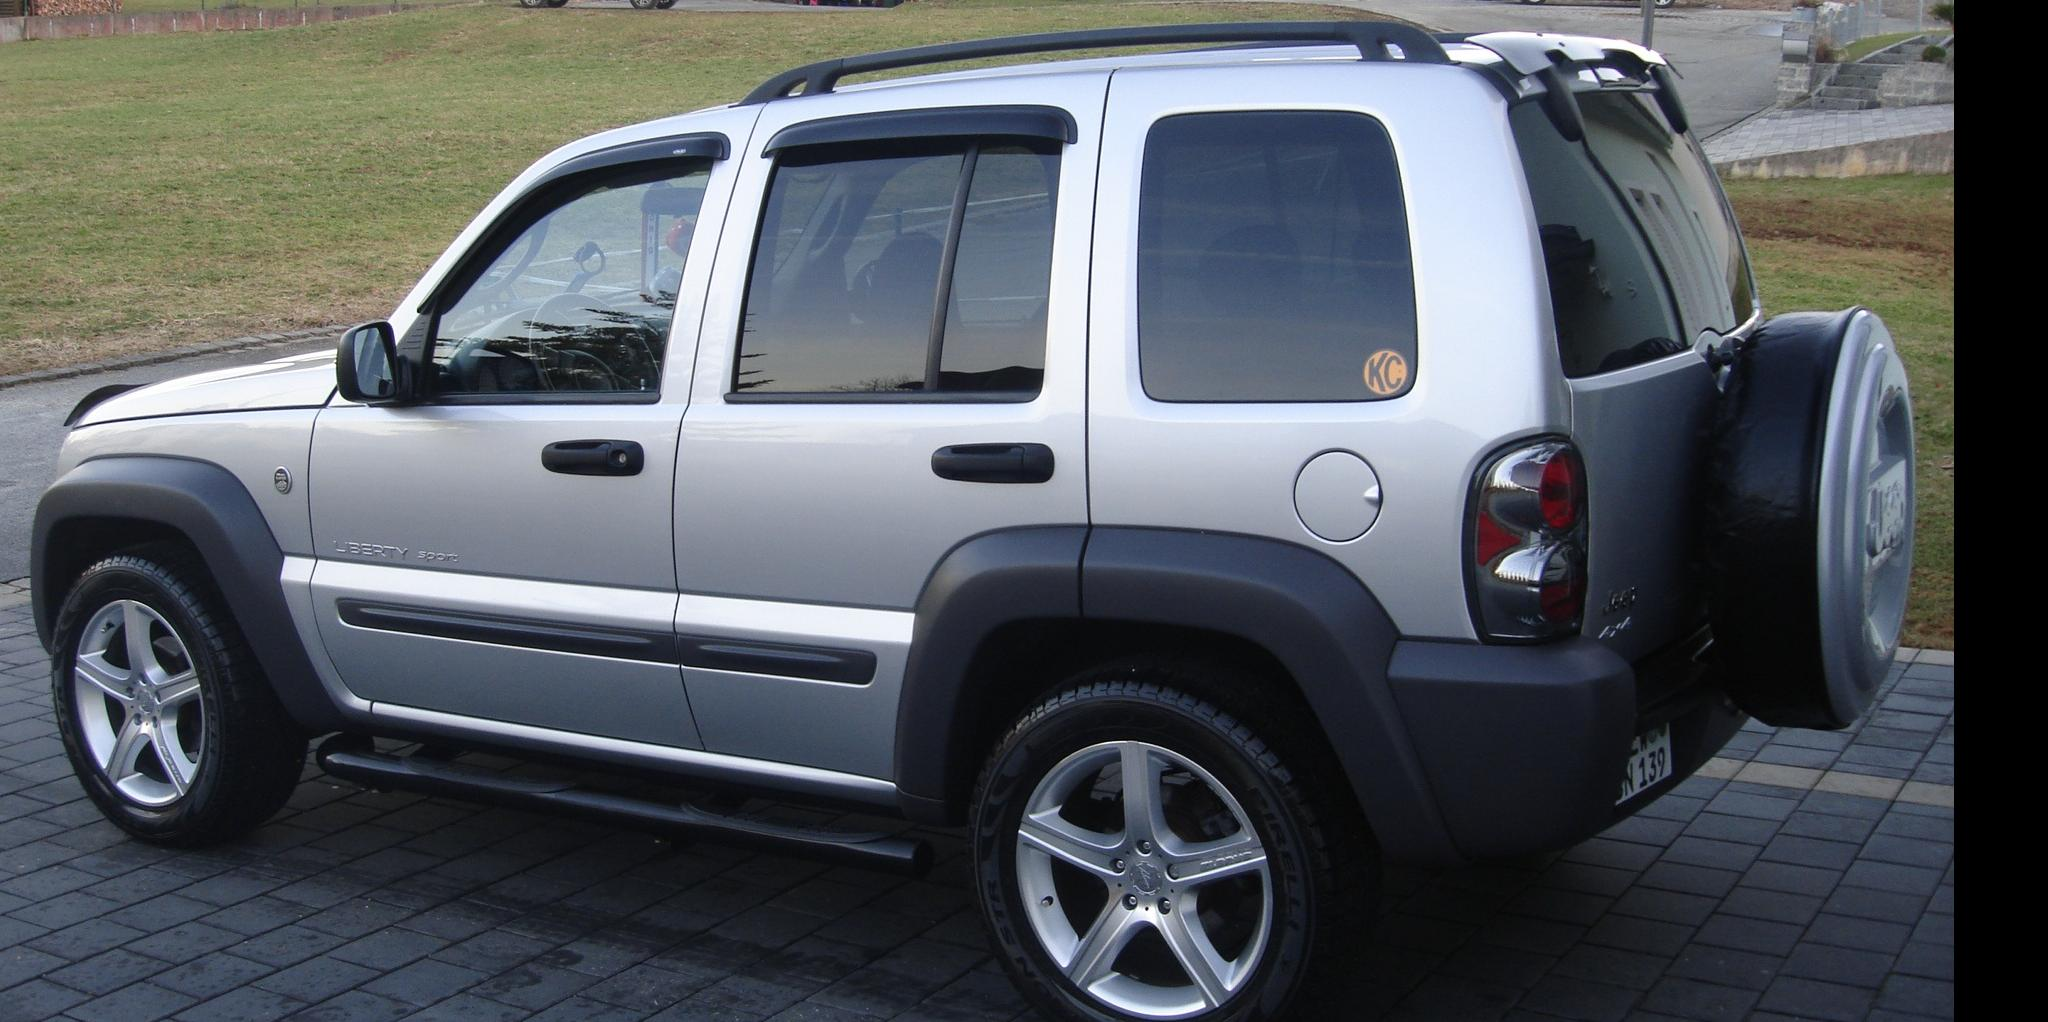 jeff cooperrider 39 s 2003 jeep liberty sport in columbus oh. Black Bedroom Furniture Sets. Home Design Ideas